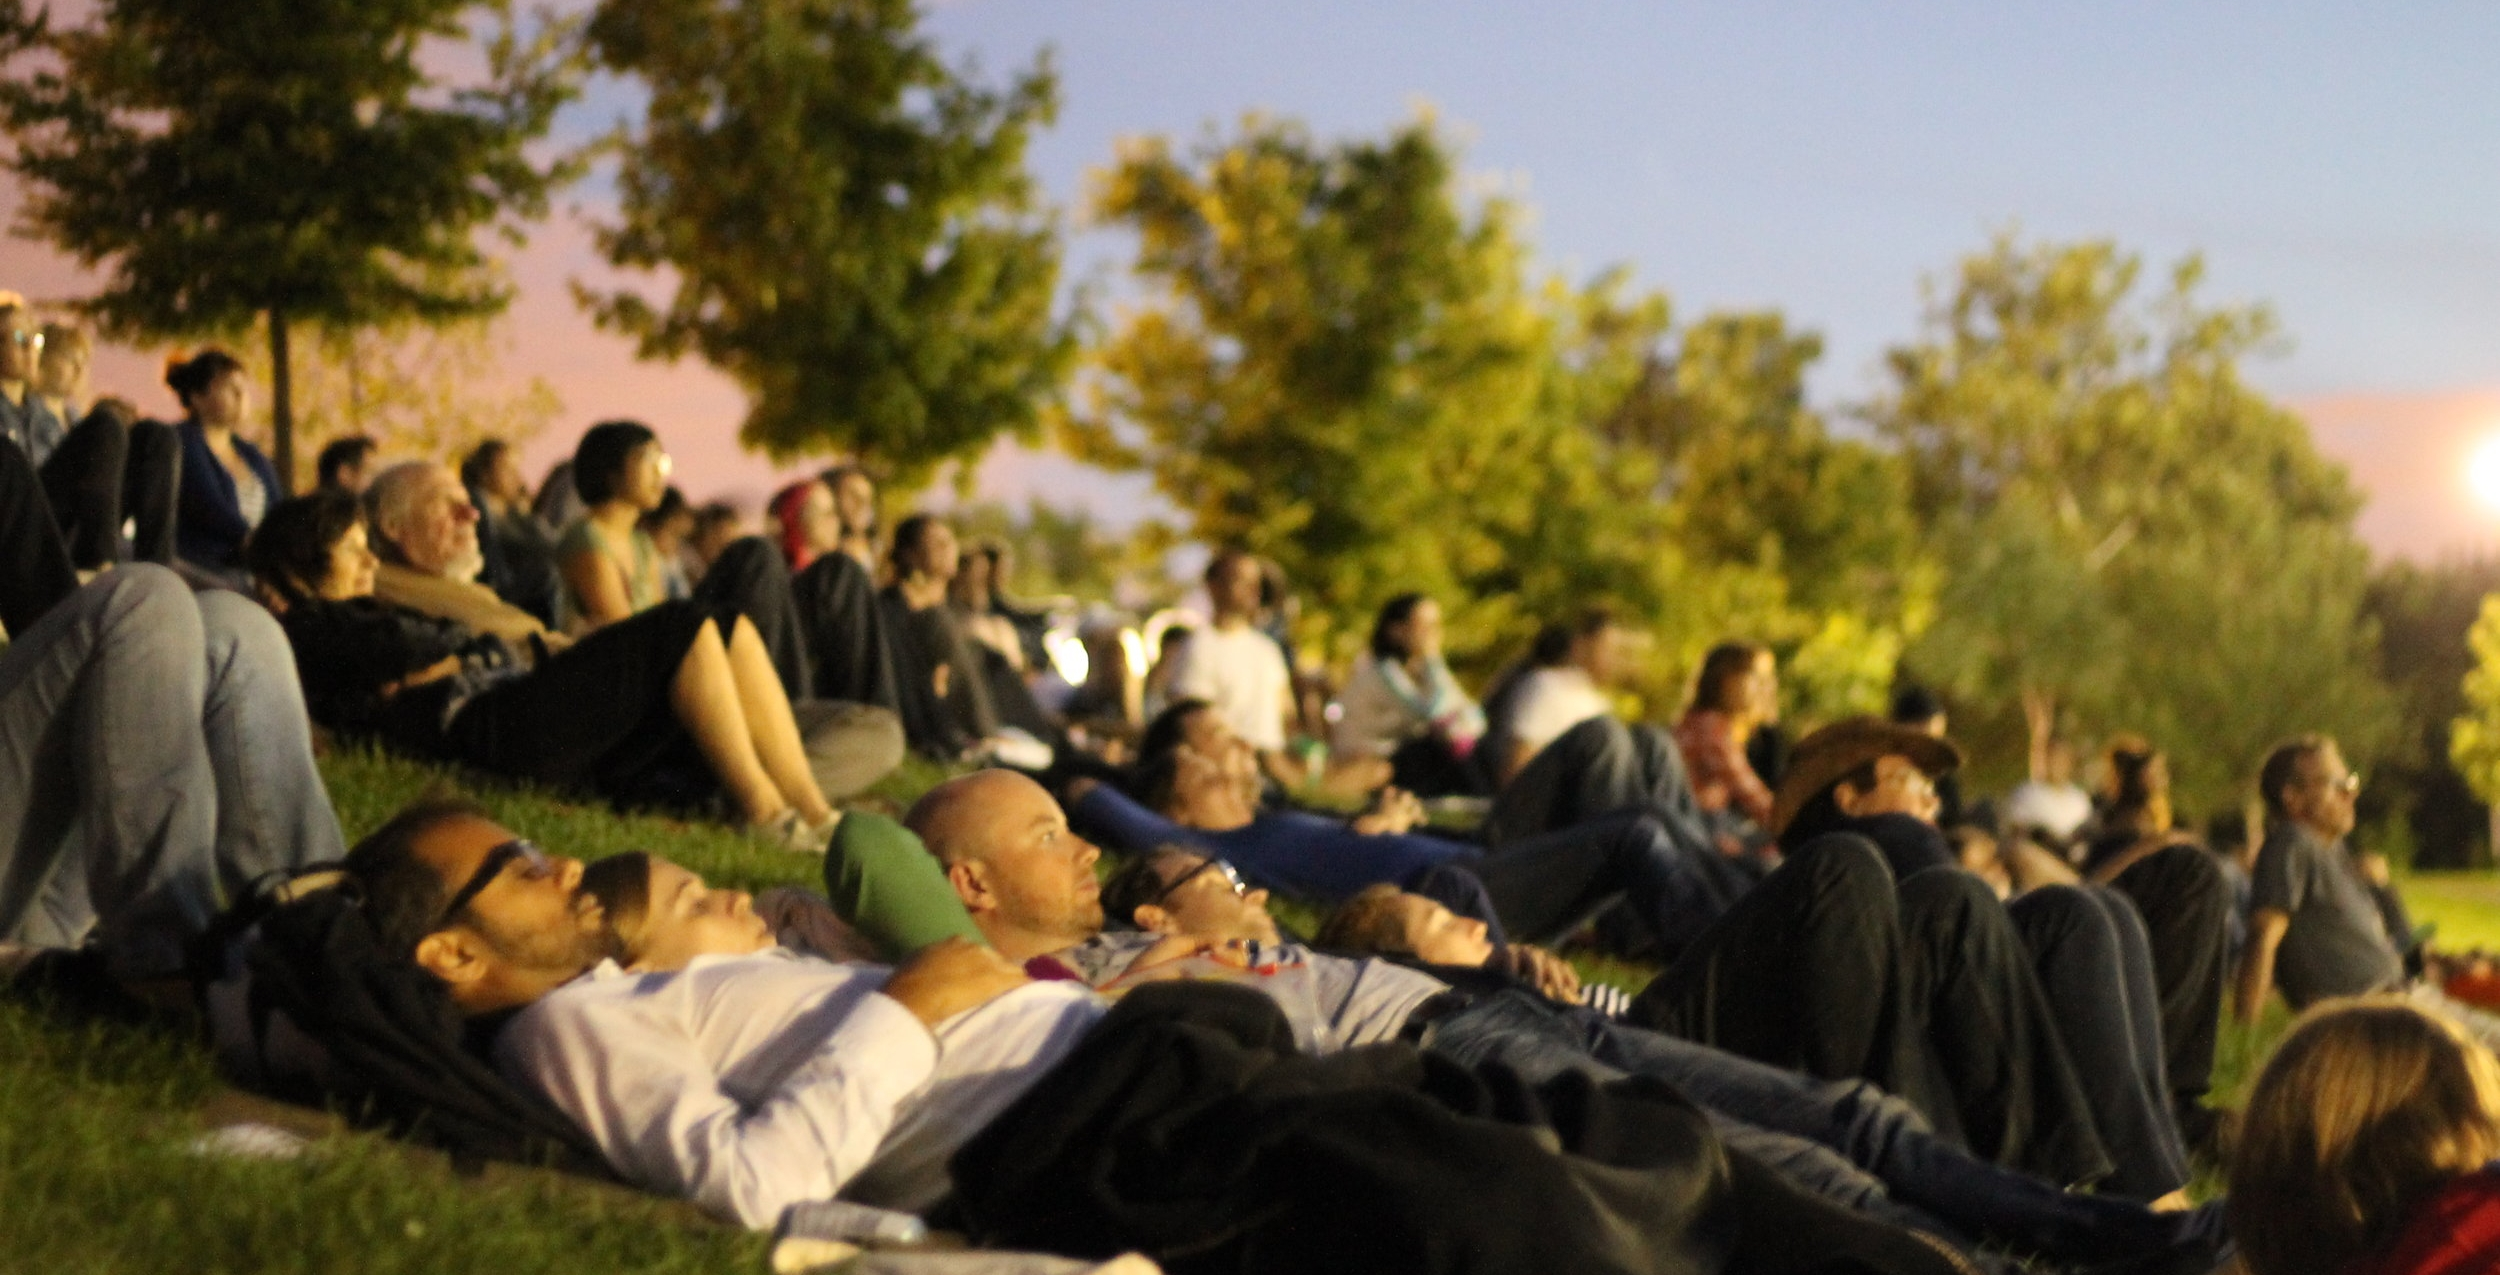 reclining-Aug11 2012-SP.JPG